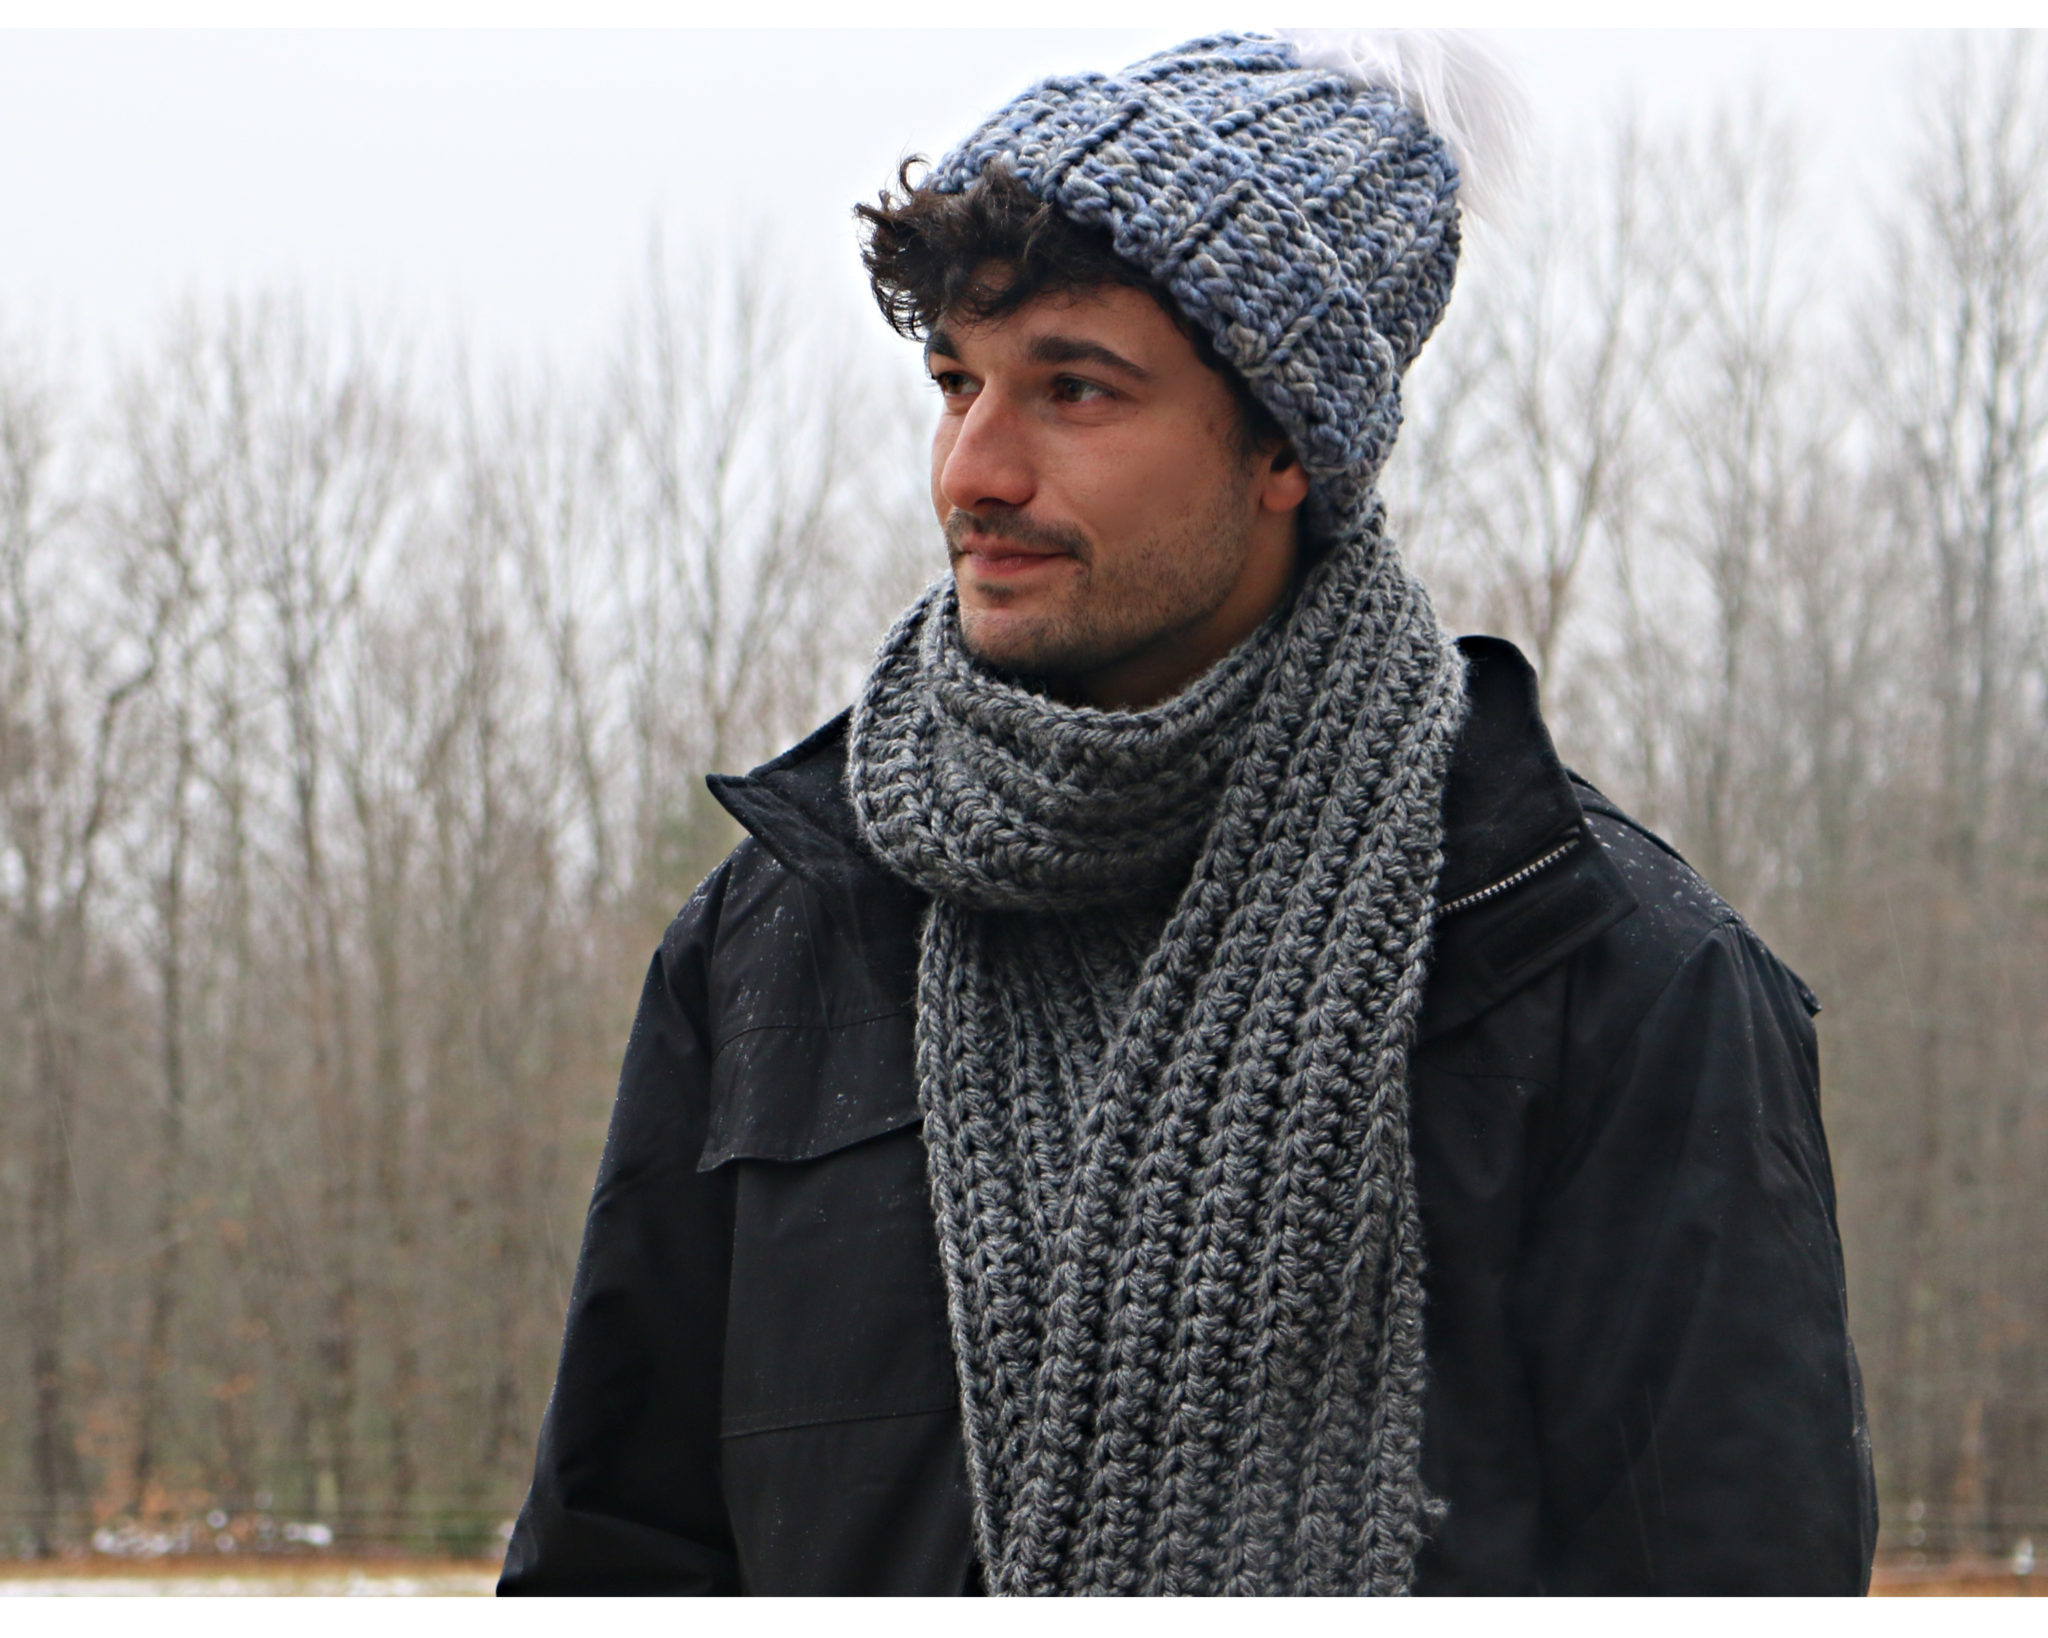 The Easiest Scarf Ever Pattern